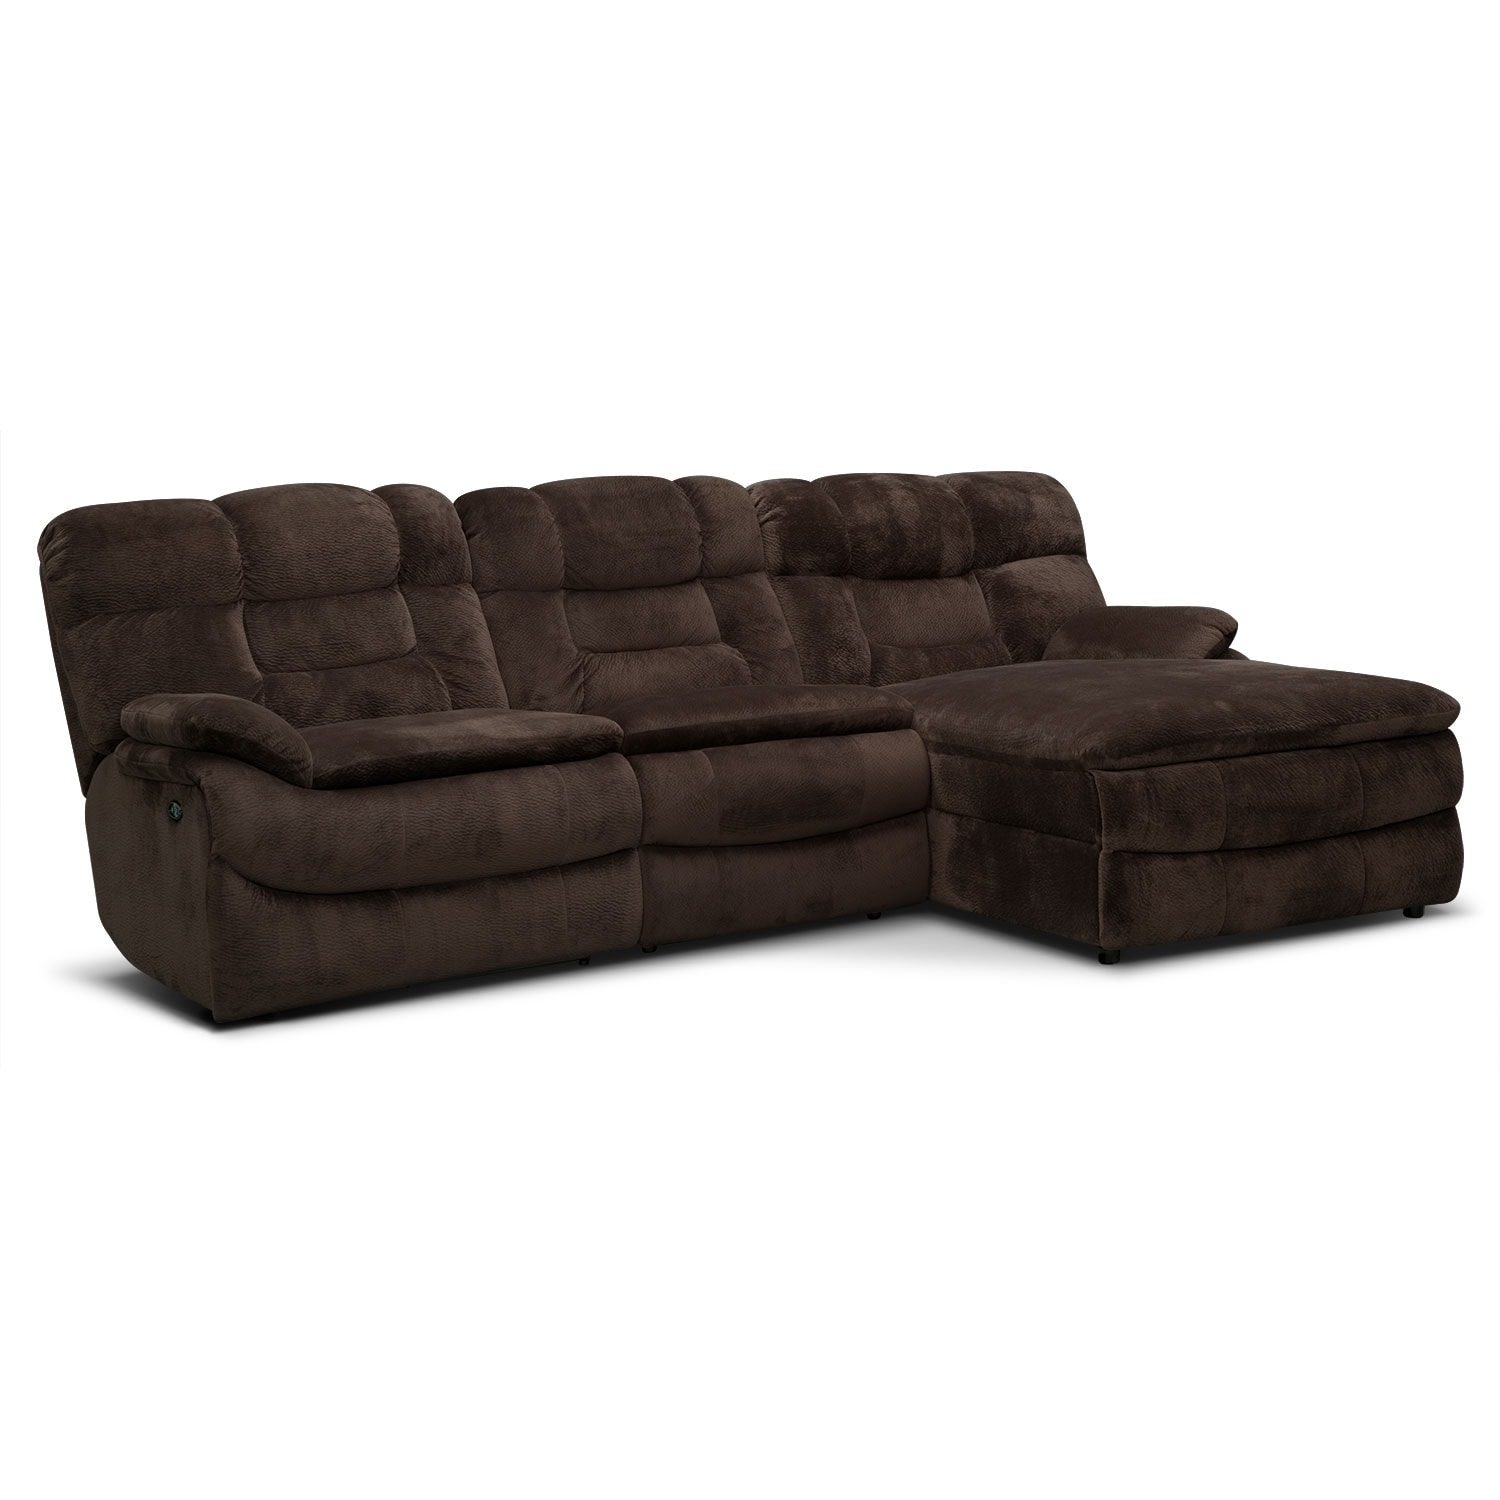 Big Softie 3 Piece Power Reclining Sectional with Right Facing